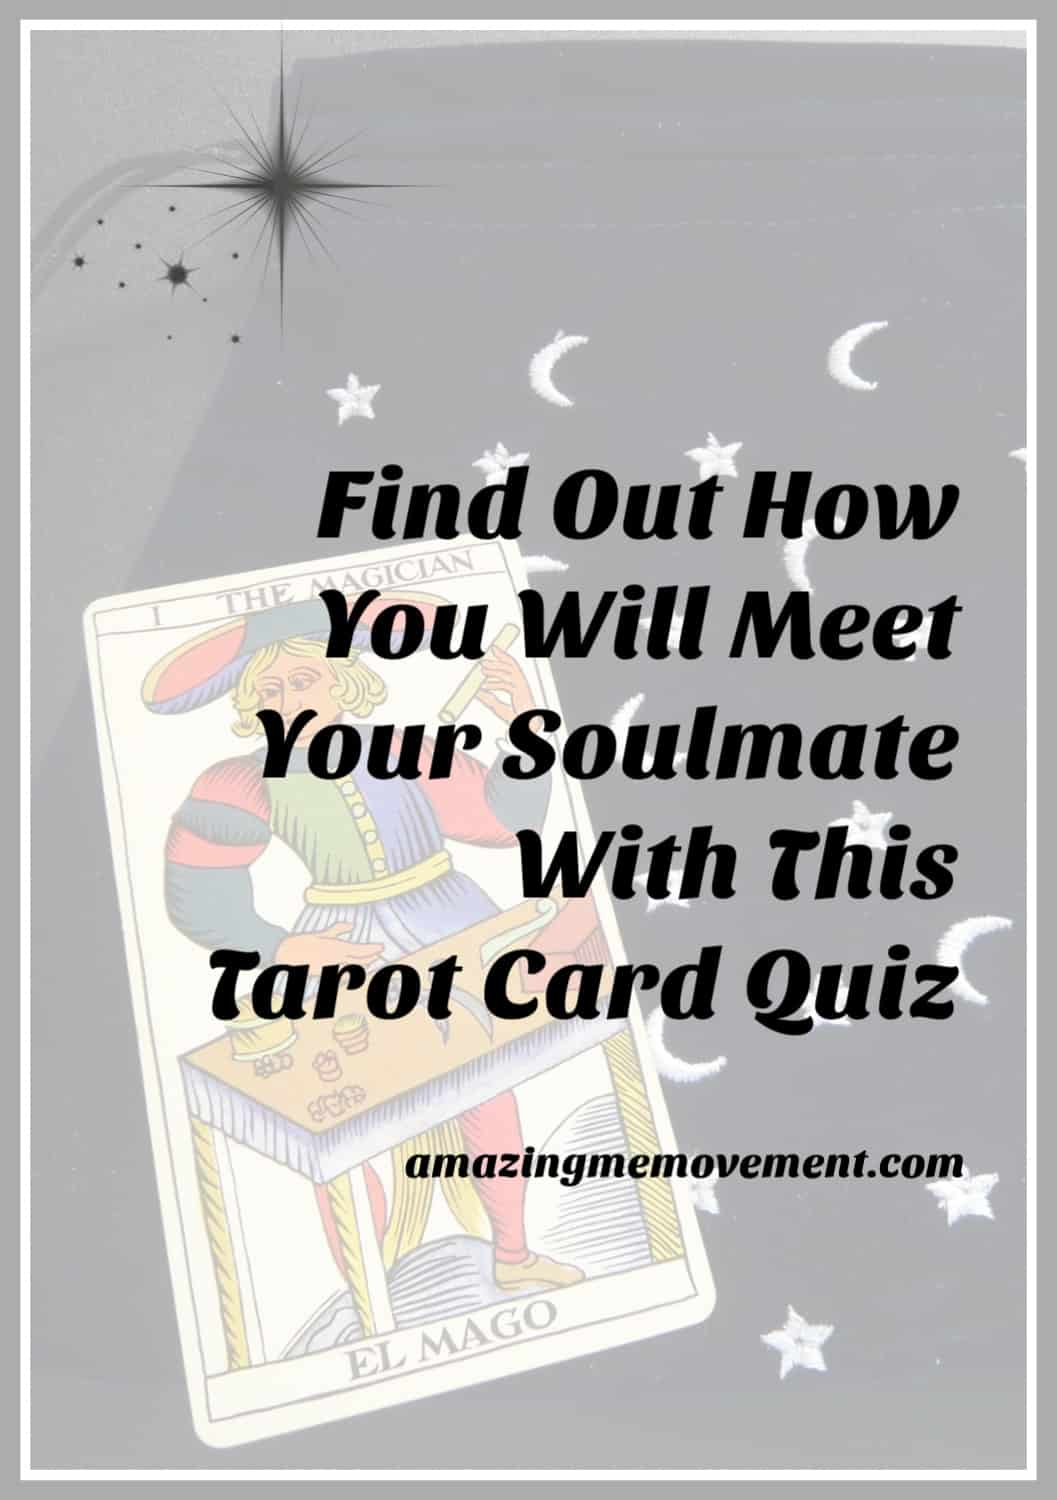 Tarot card quiz will reveal how you meet your soulmate